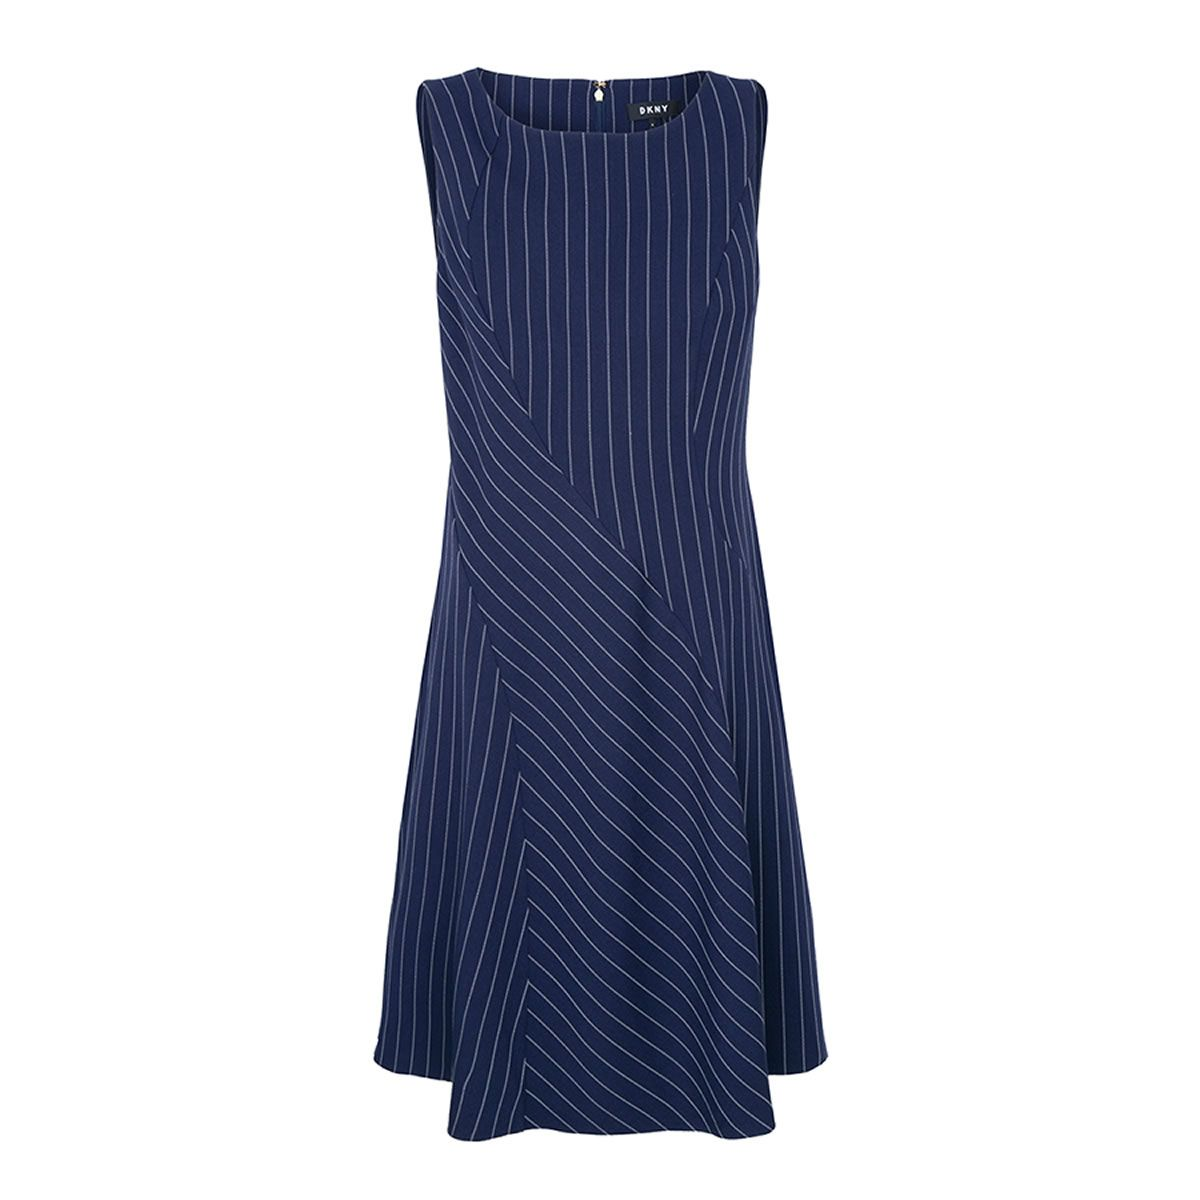 891d9f2dc9 DKNY Dresses for Women - Macy s